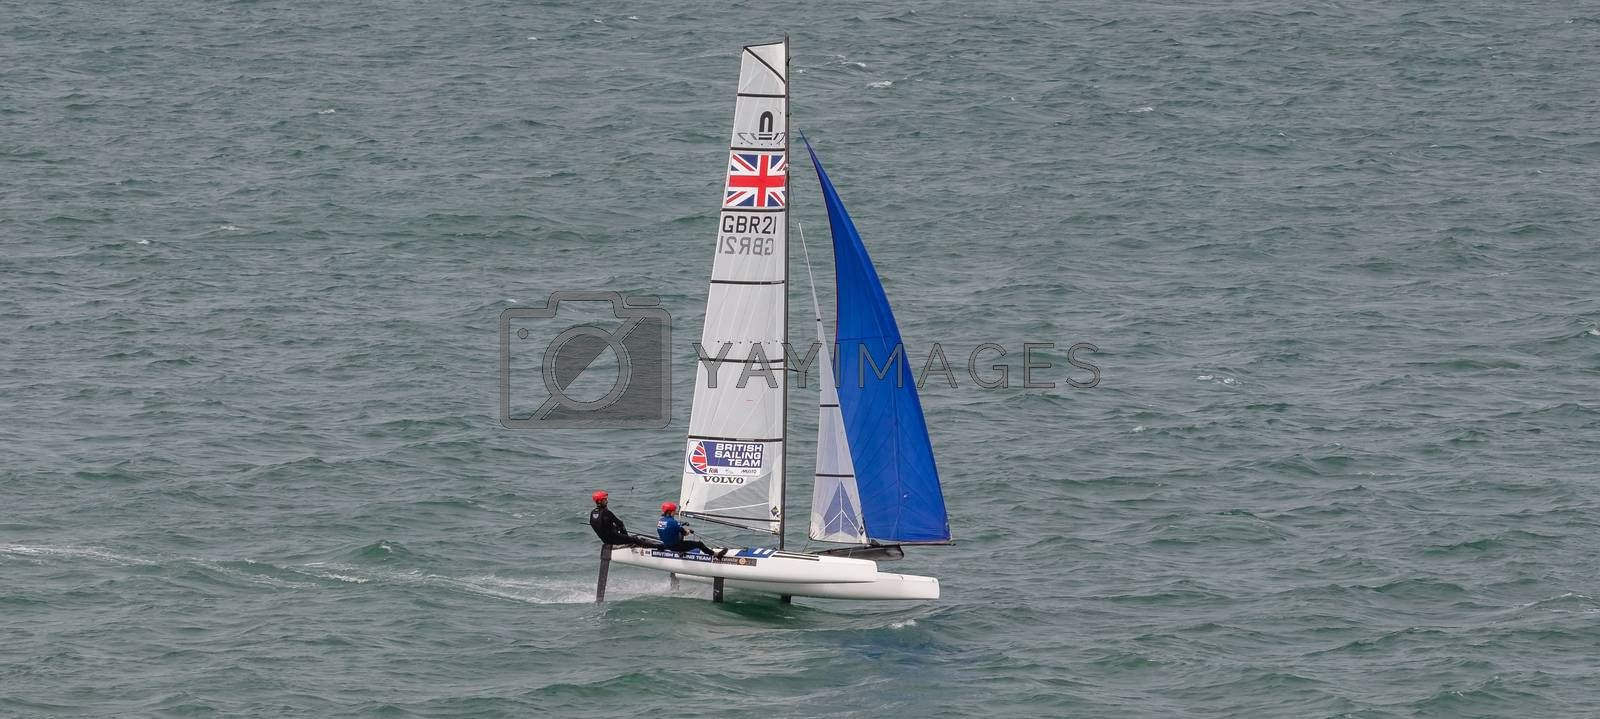 Portland harbour, United Kingdom - July 1, 2020: High Angle aerial panoramic shot of racing catamaran of the British Sailing Team. Two sailors on it wearing red helmets, British flag on the sails.